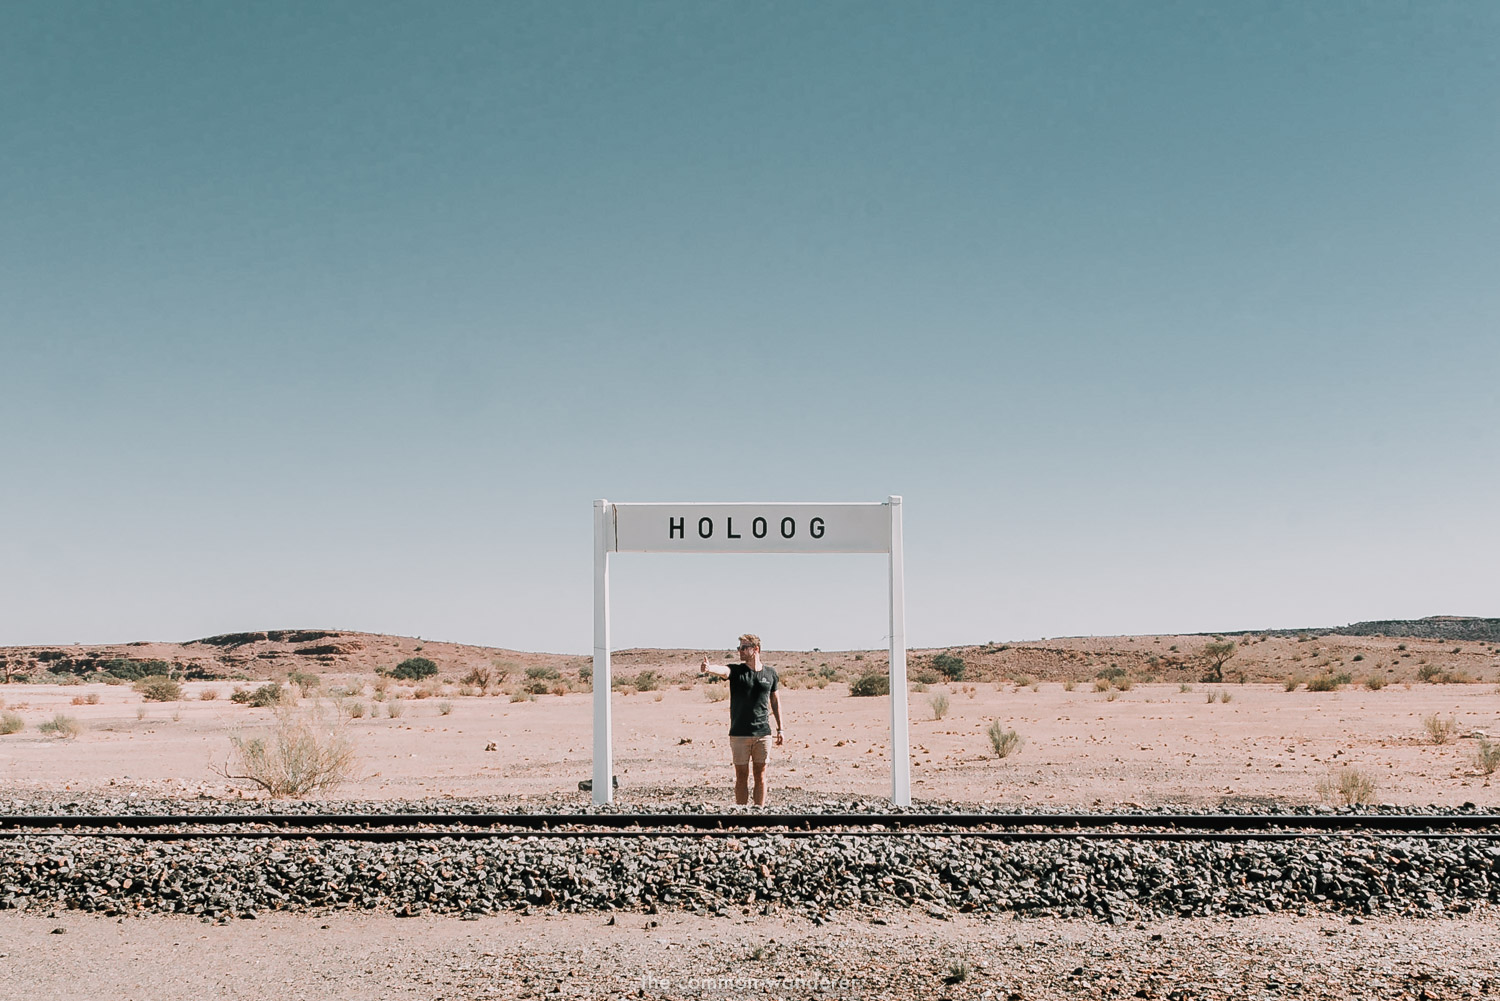 A man waits for a train that never arrives in Holoog, Namibia